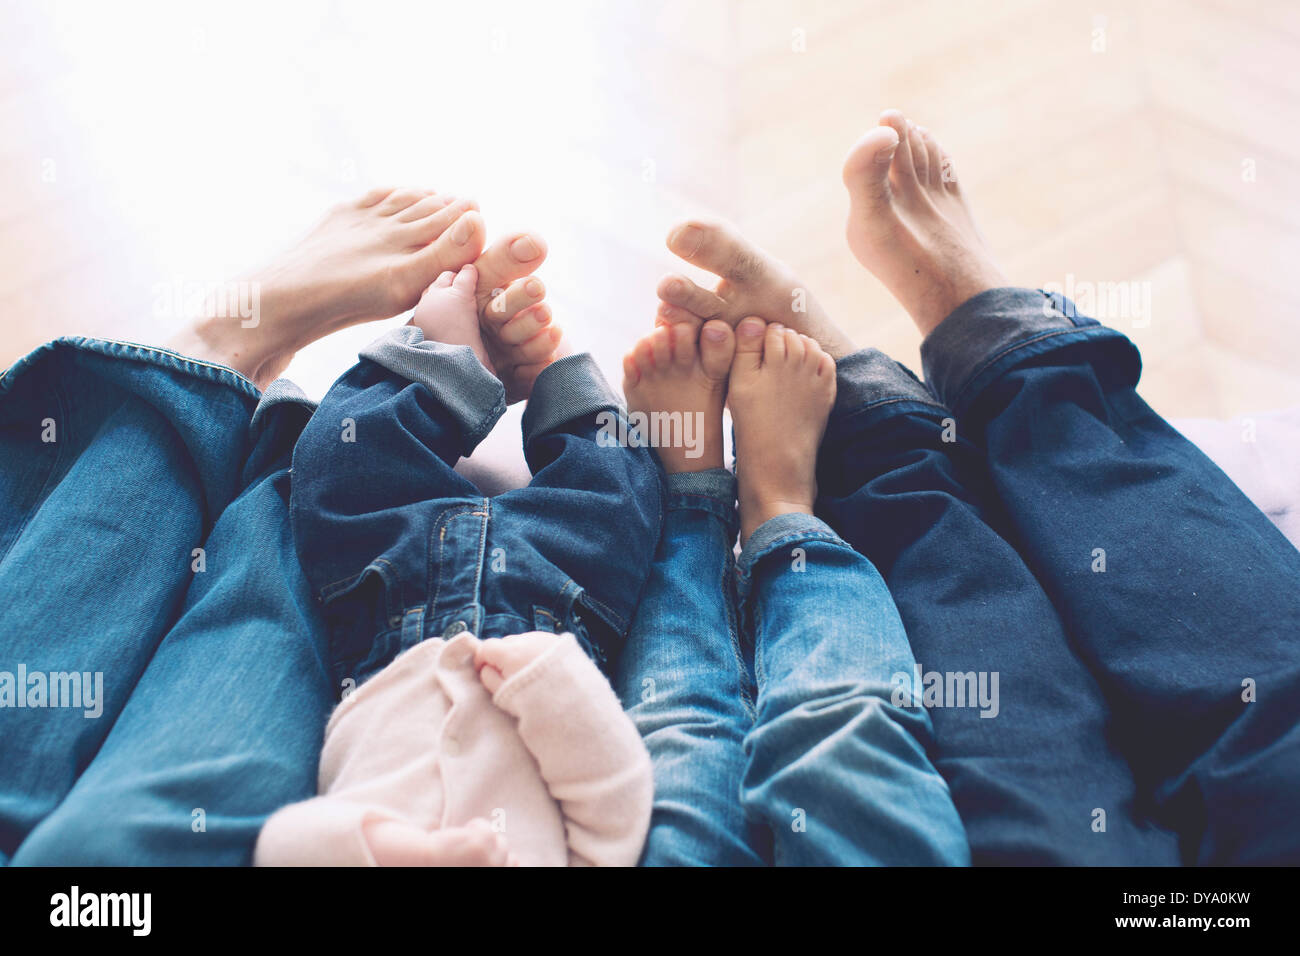 Outstretched legs and barefeet of family with two children - Stock Image